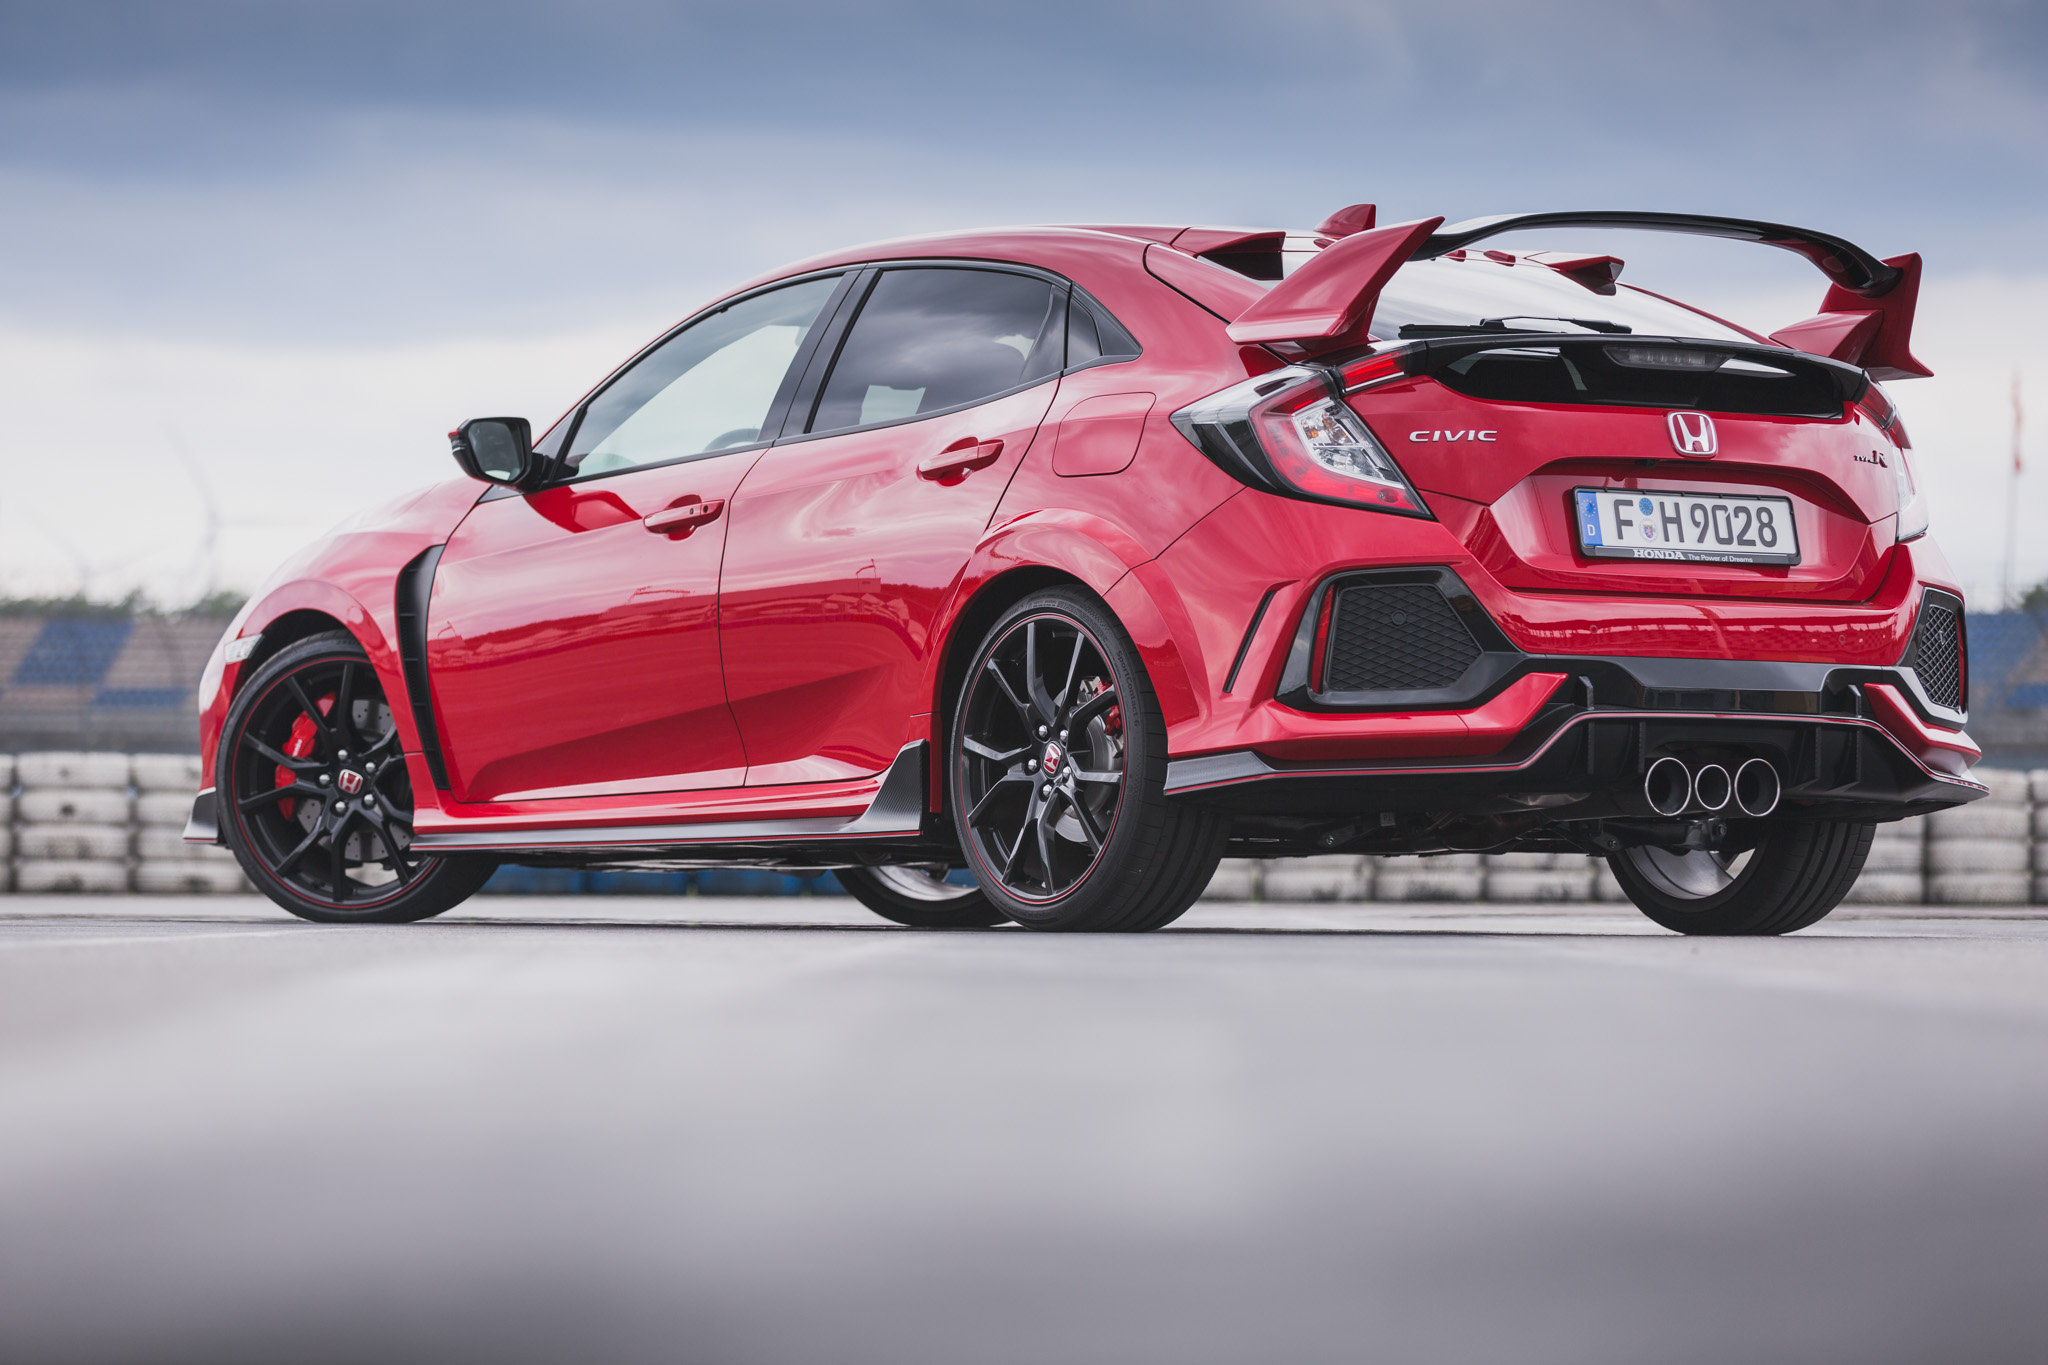 2017 honda civic type r fk8 review motor verso for Buy honda civic type r